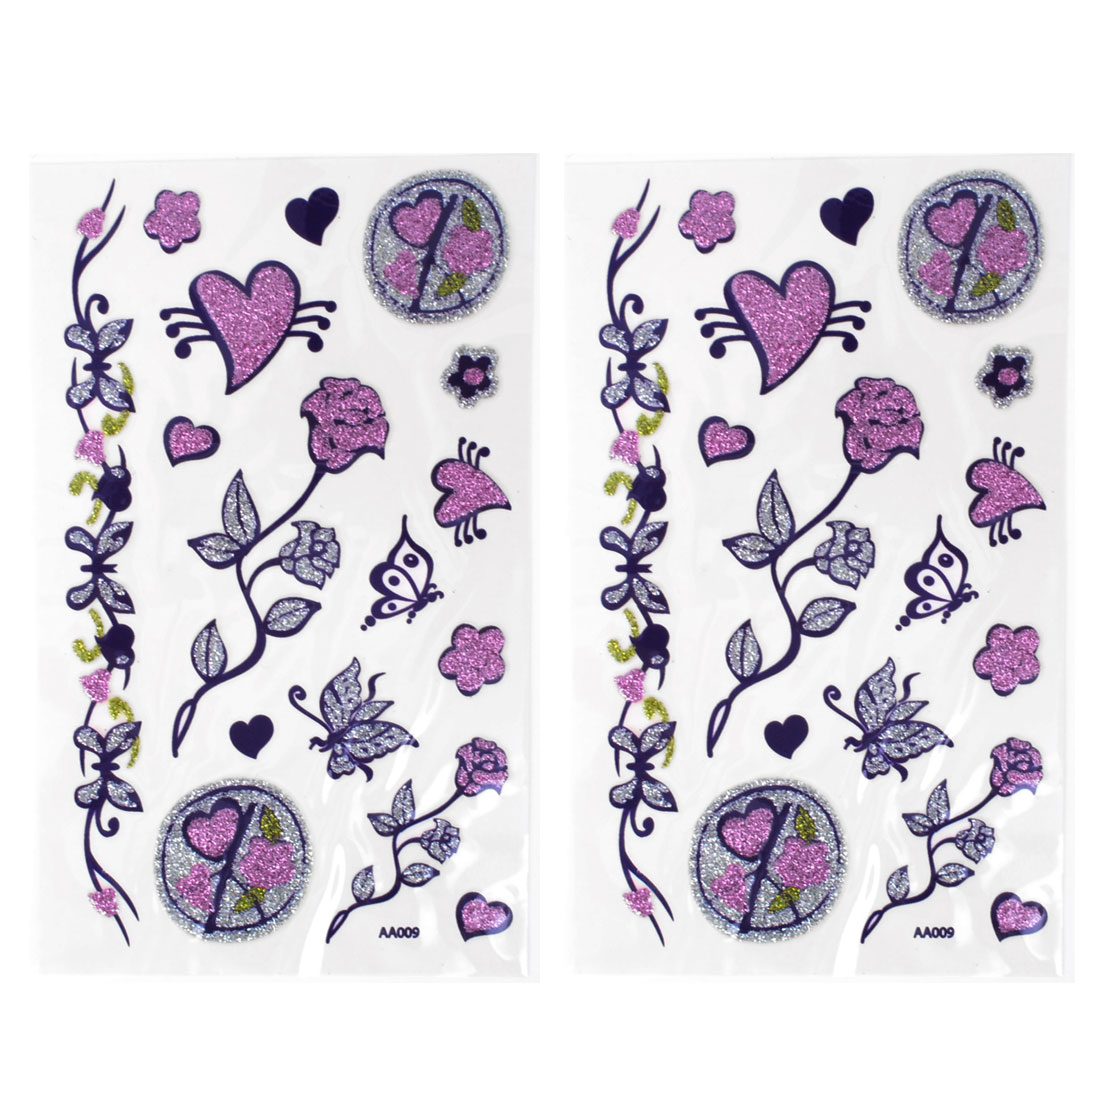 Pink Silver Gray Skin Decorative Floral Hearts Pattern Temporary Transfer Tattoo Beauty Decals 2 Pcs